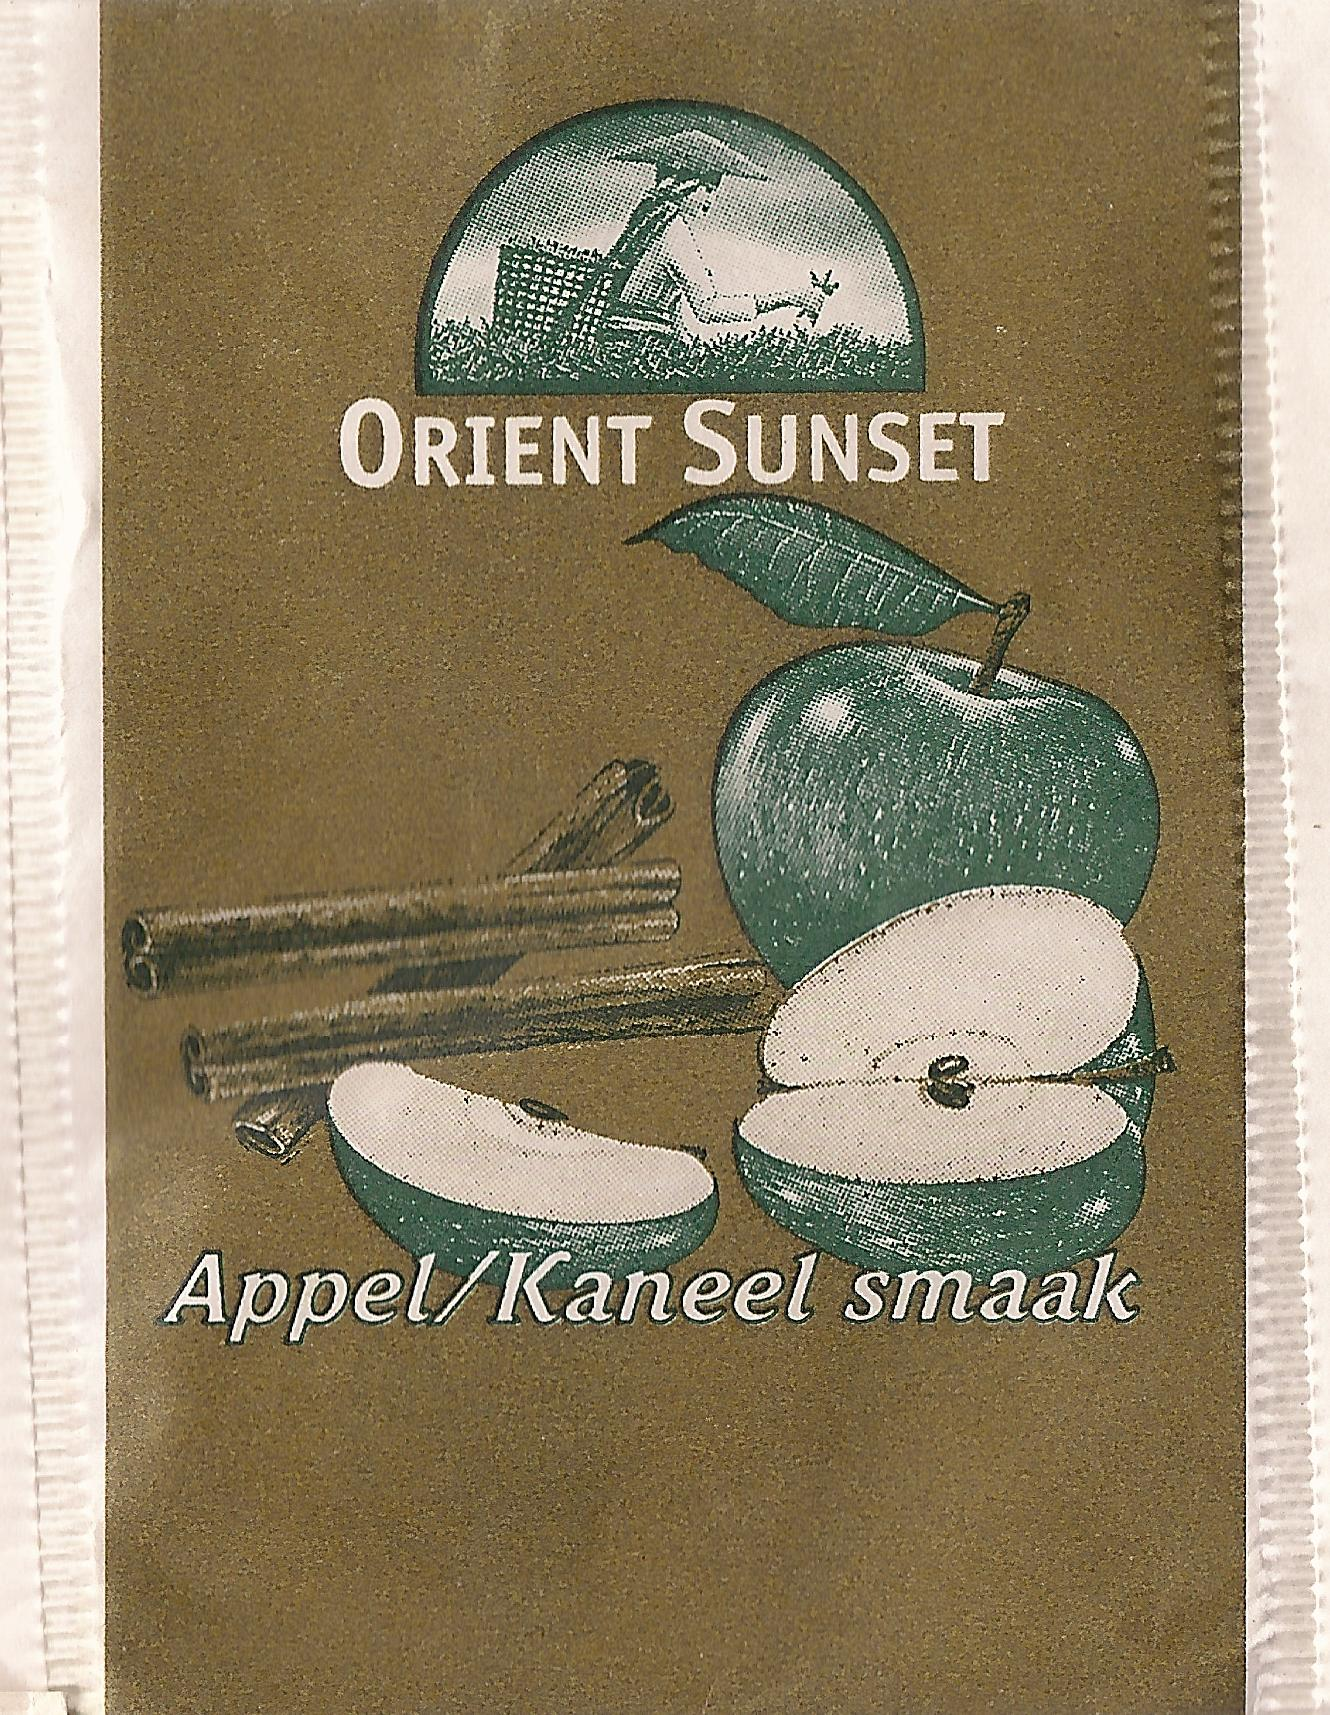 Orient Sunset